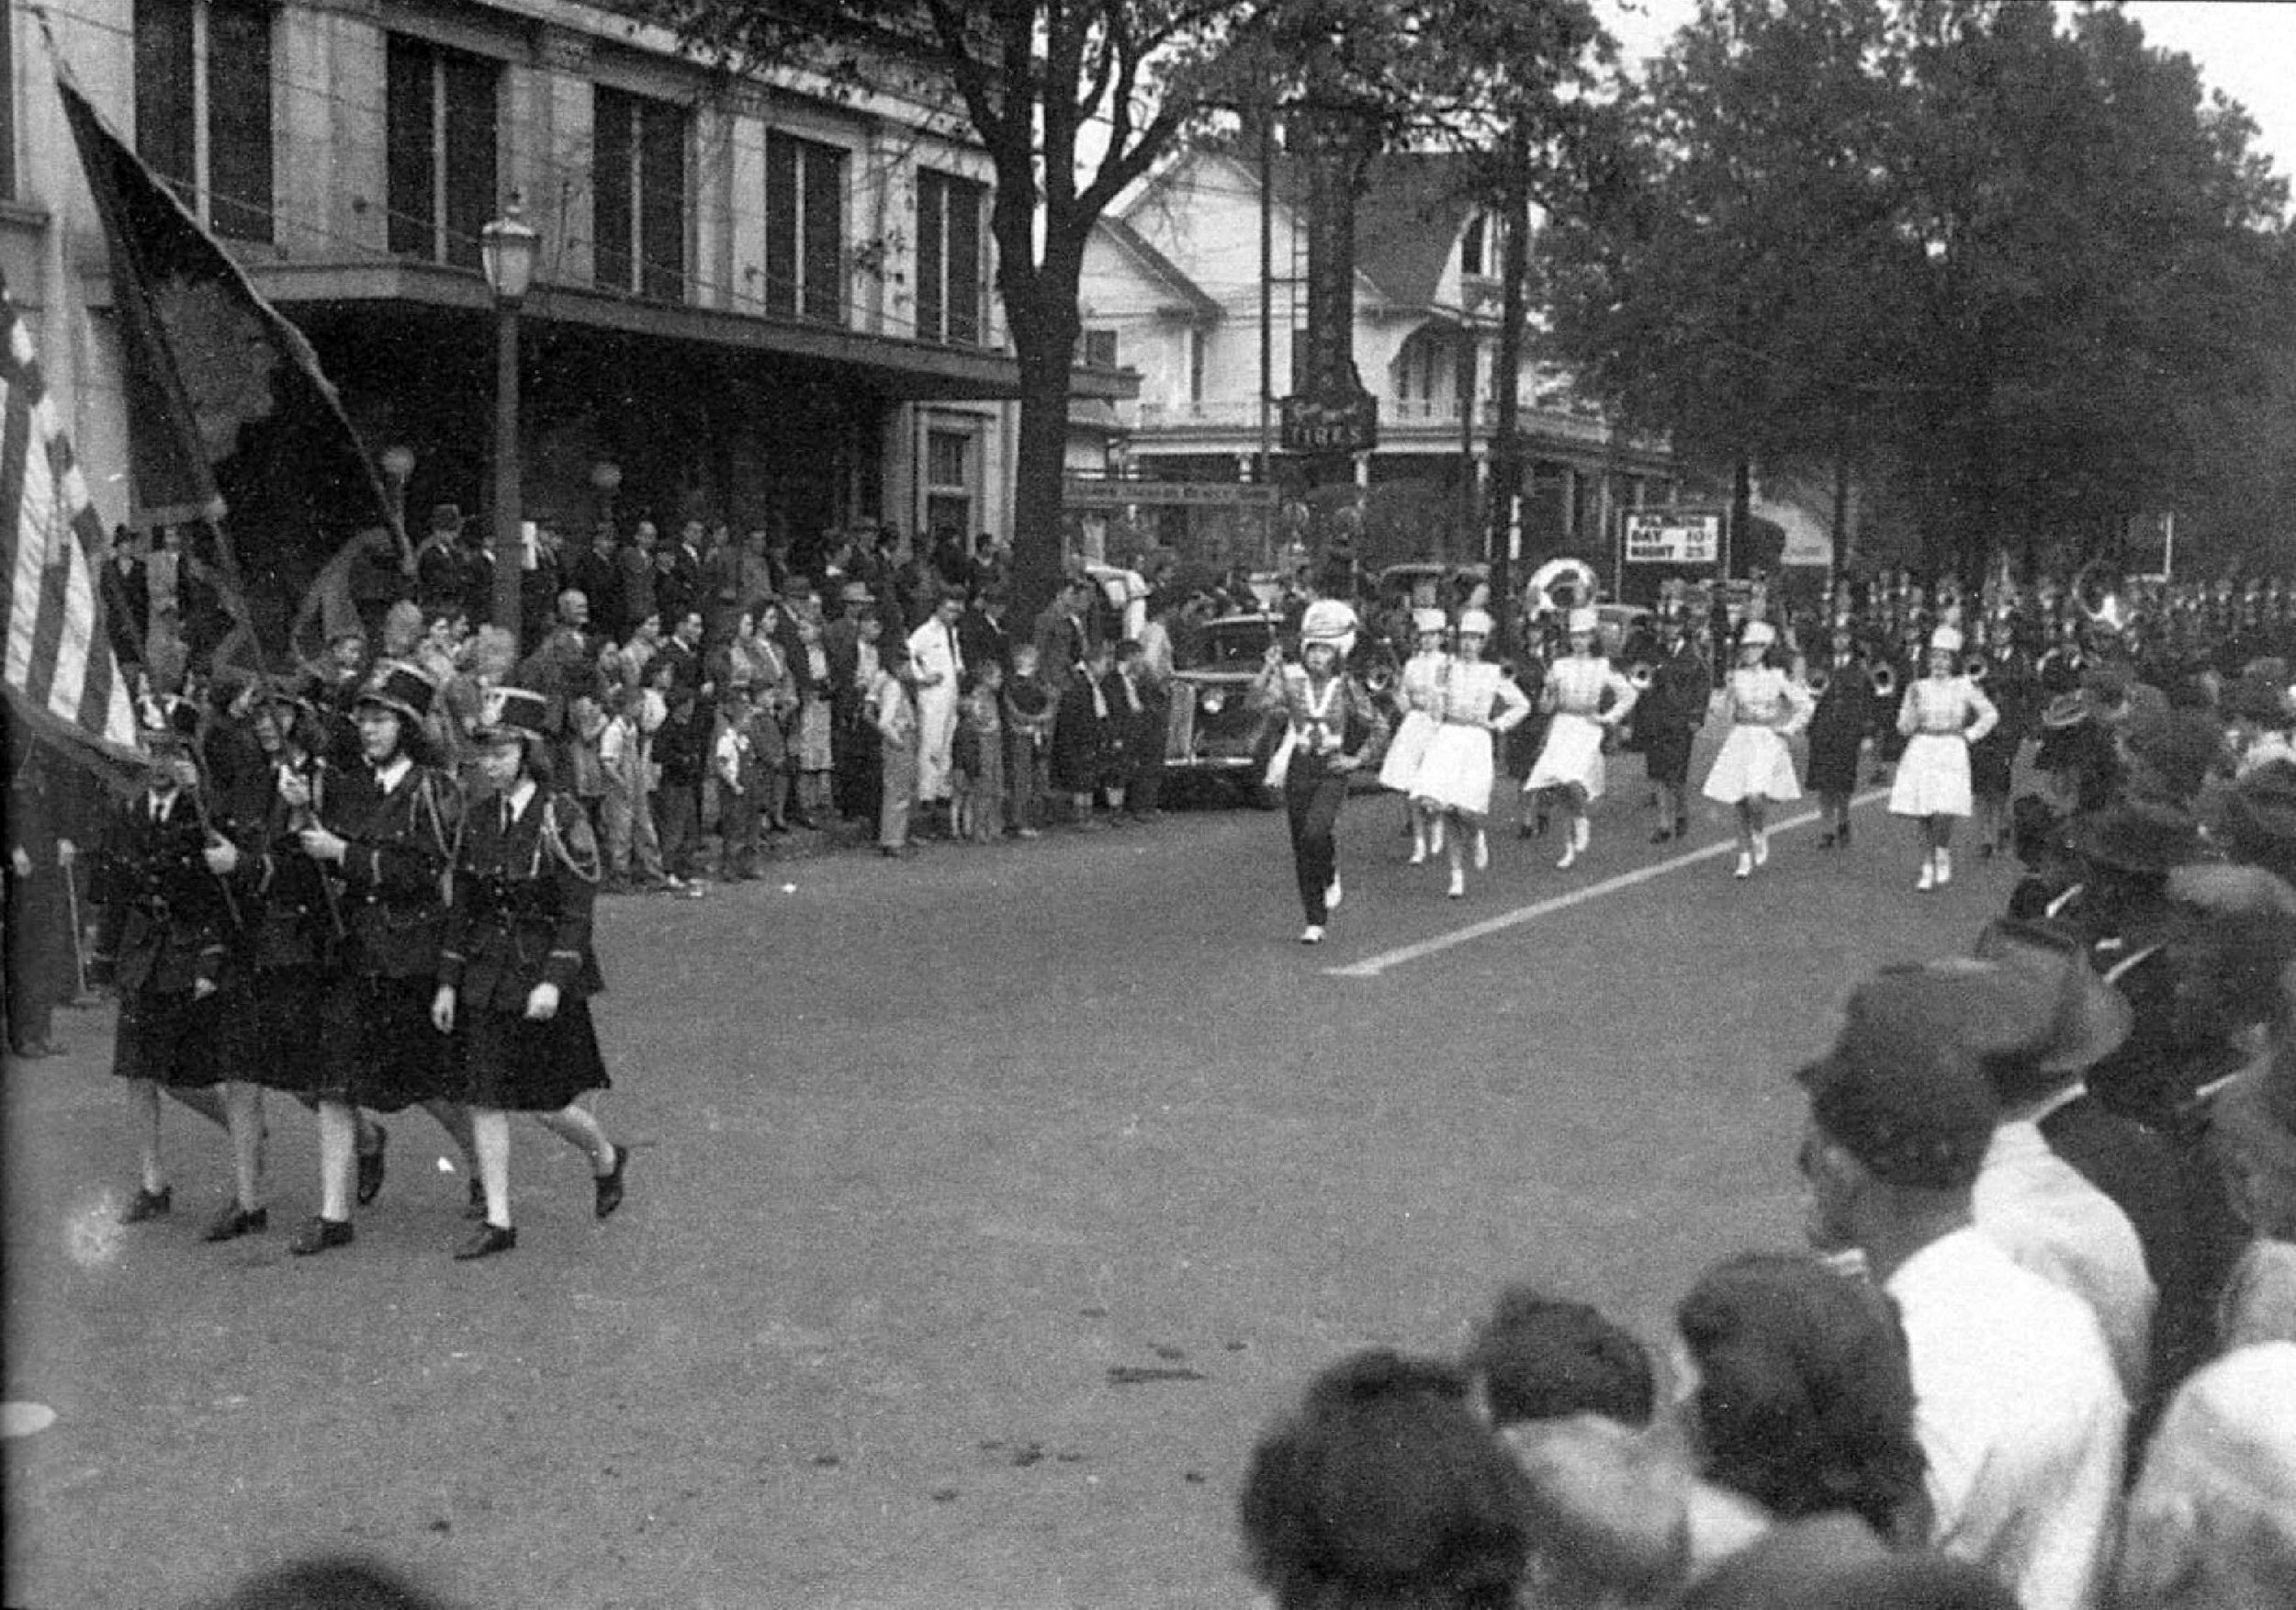 Rock Hill parade ca. 1940s showing the Andrew Jackson Hotel in the background (Lt), along with the Roddey House, what would later become the home of Bass Funeral Home. The funeral home later move to the Flower's home further out East Main Street.